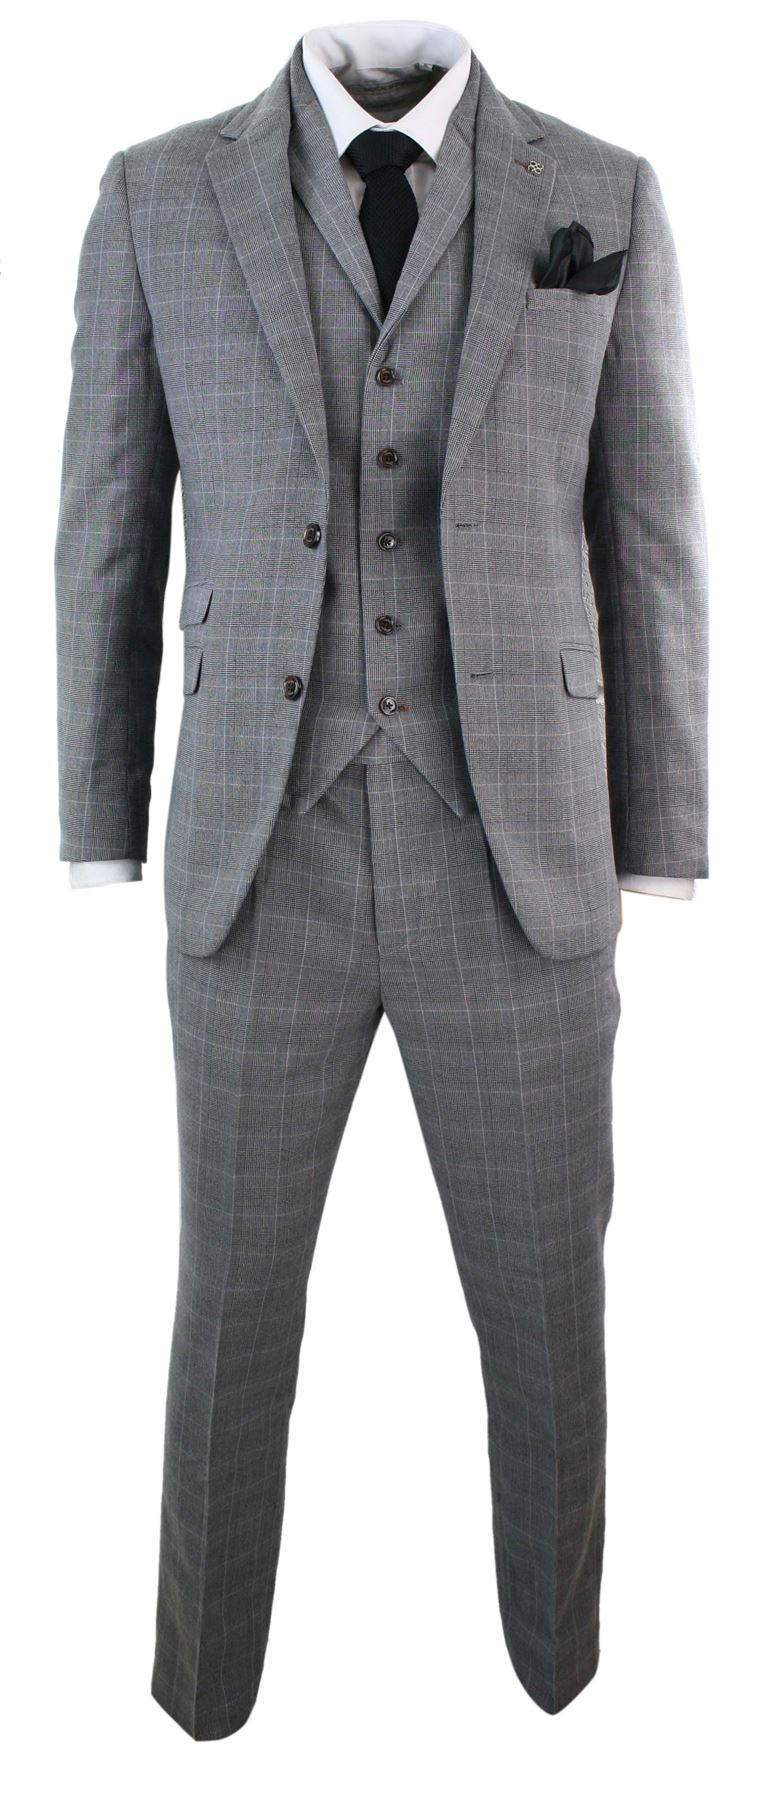 Find great deals on a Grey Suit for Men, Grey Suit for Women or Grey Suit for Juniors at Macy's. Bar III Men's Slim-Fit Active Stretch Suit Jacket, Created for Macy's BAR III Light Gray Chambray Suit Separates, Created for Macy's.